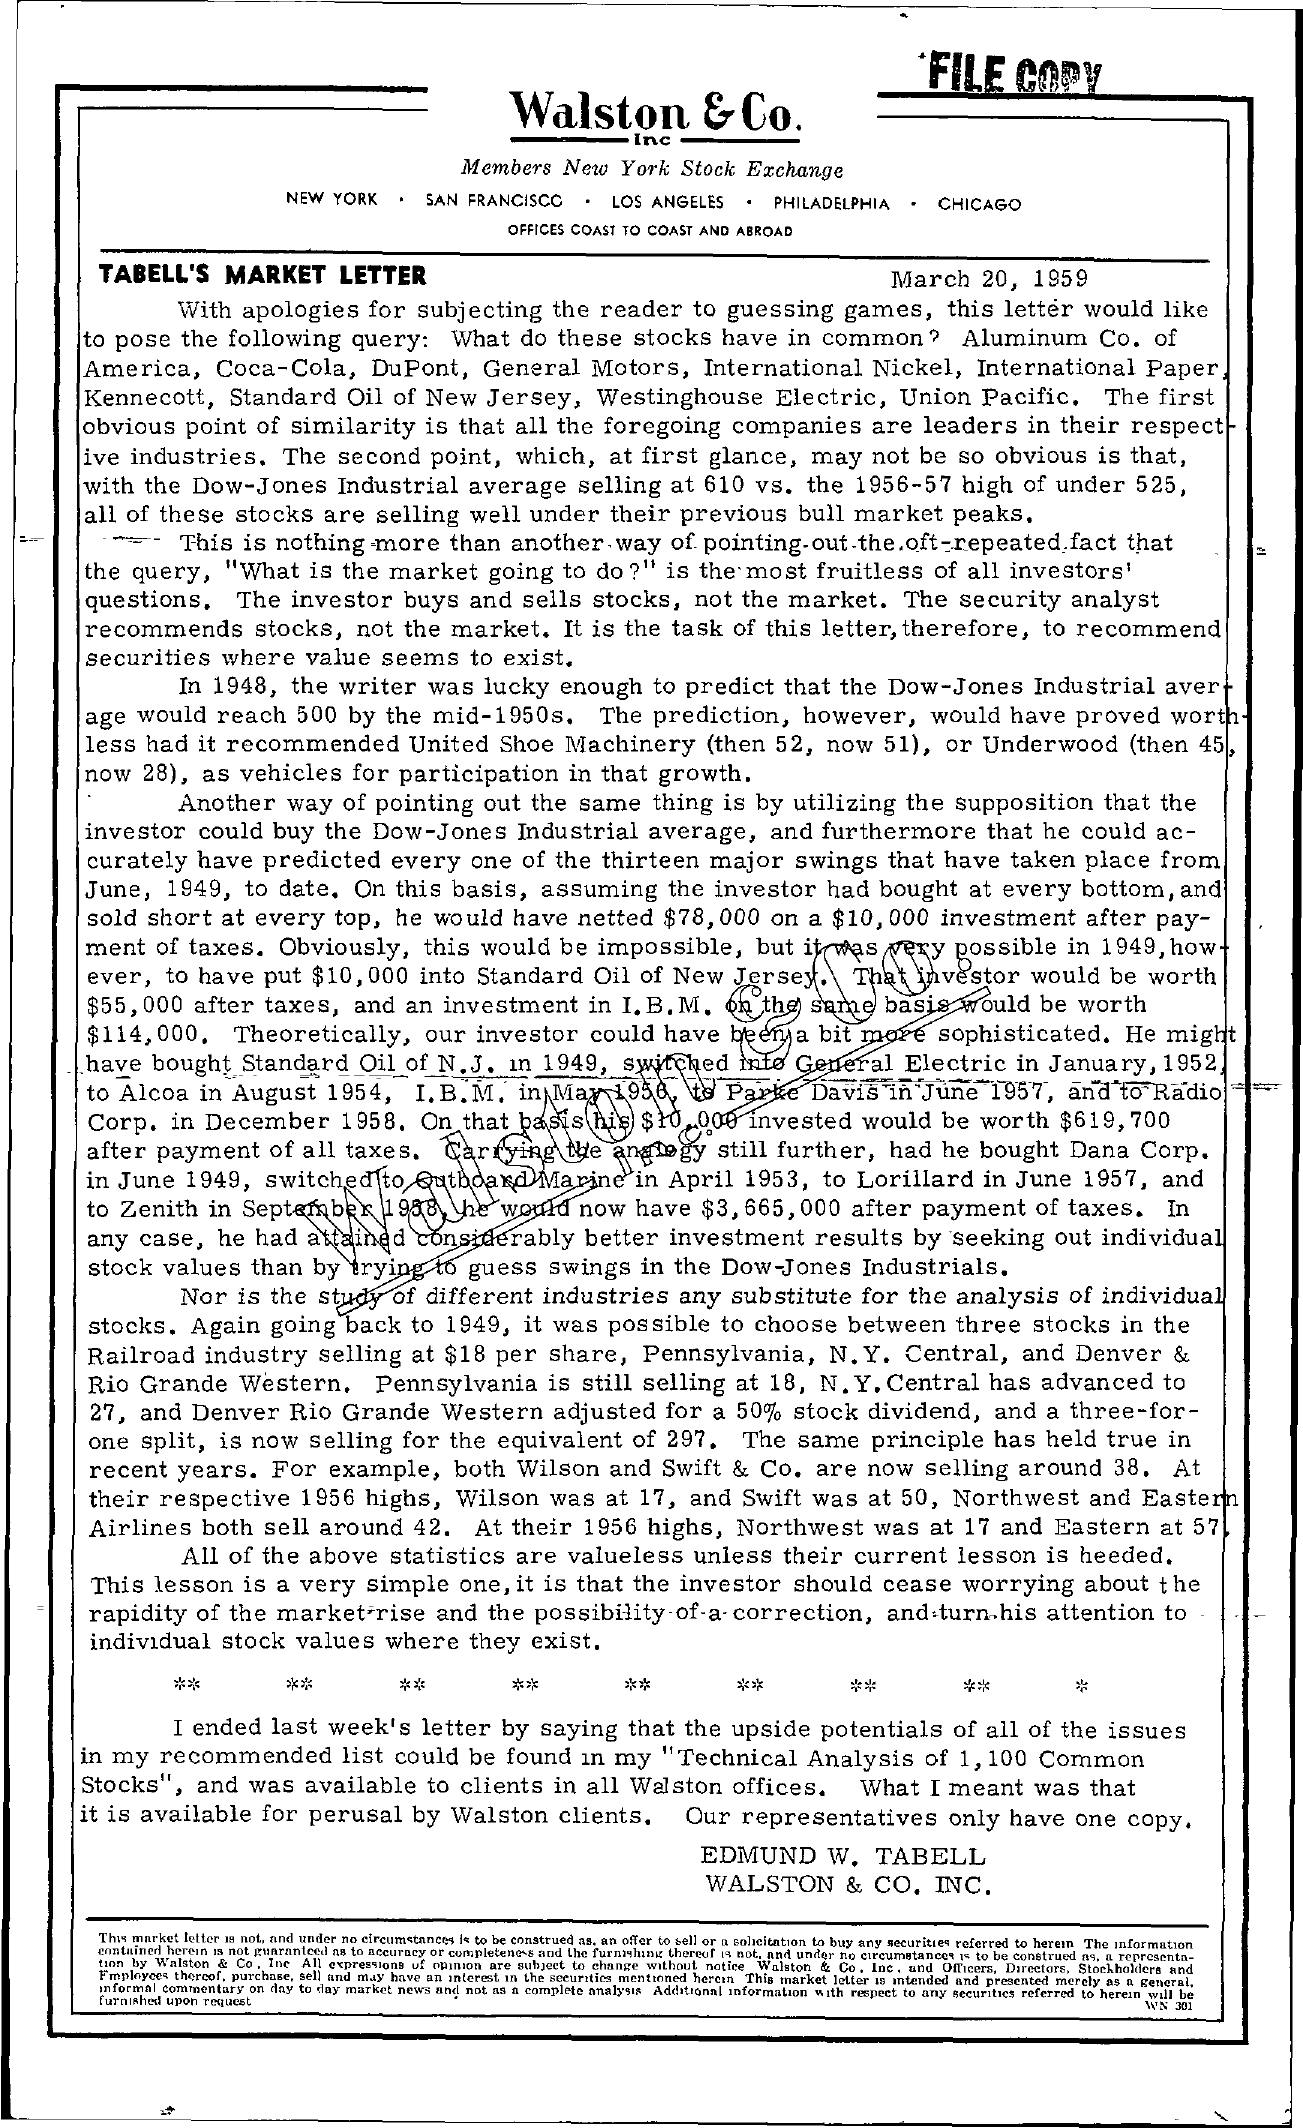 Tabell's Market Letter - March 20, 1959